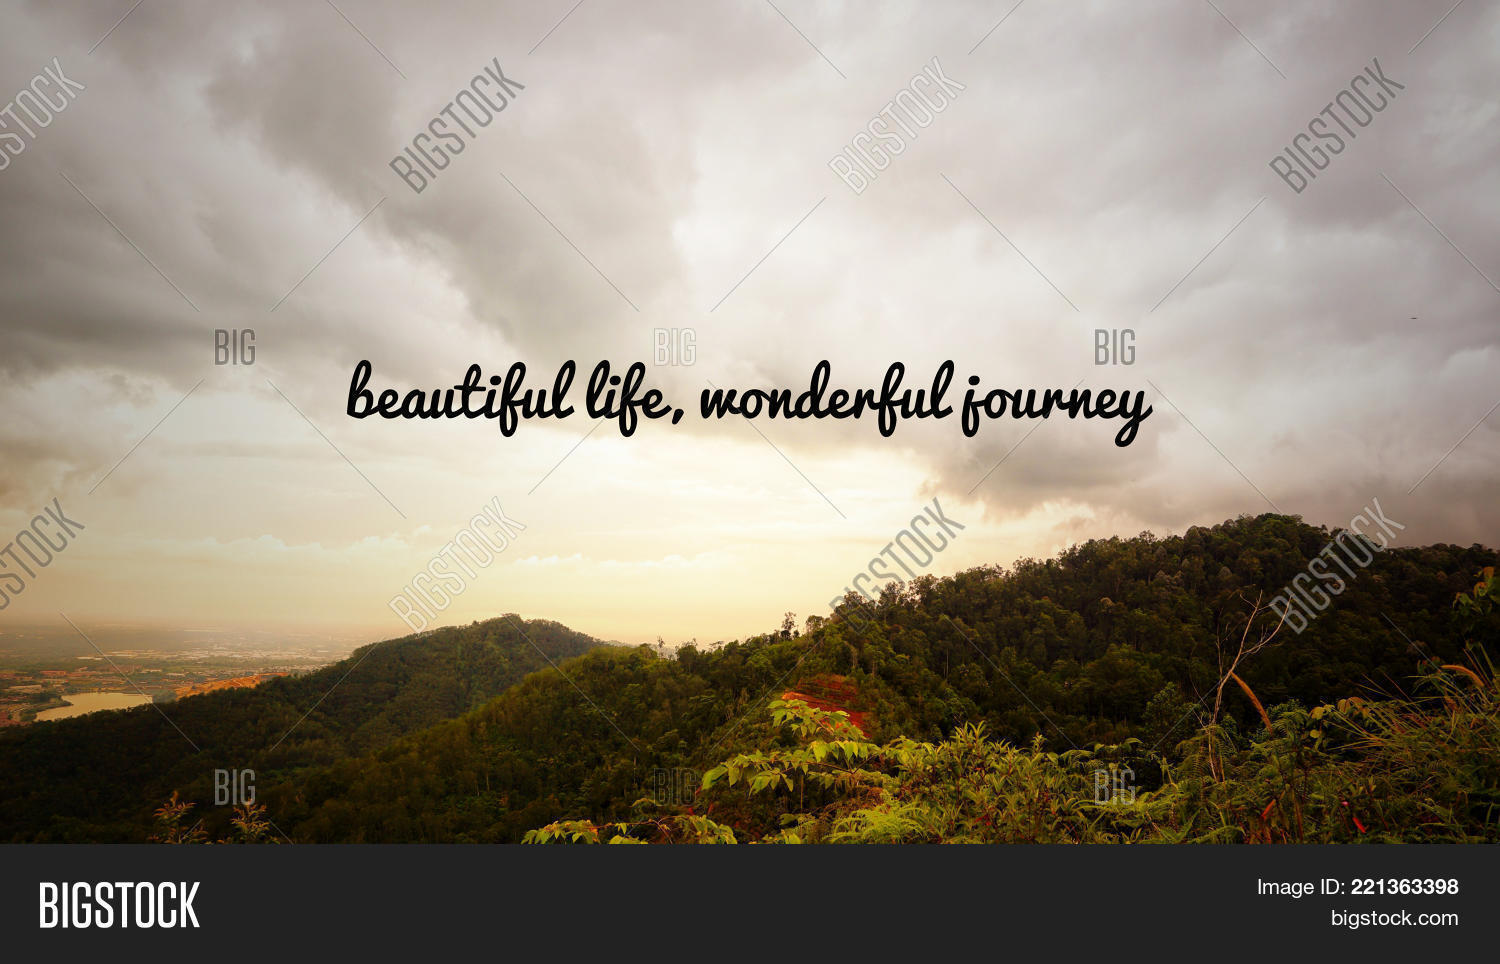 Arteaga Hostal & Baños Arabes Elvira Beaufiful Beautiful Life Quotes Images Gallery 17